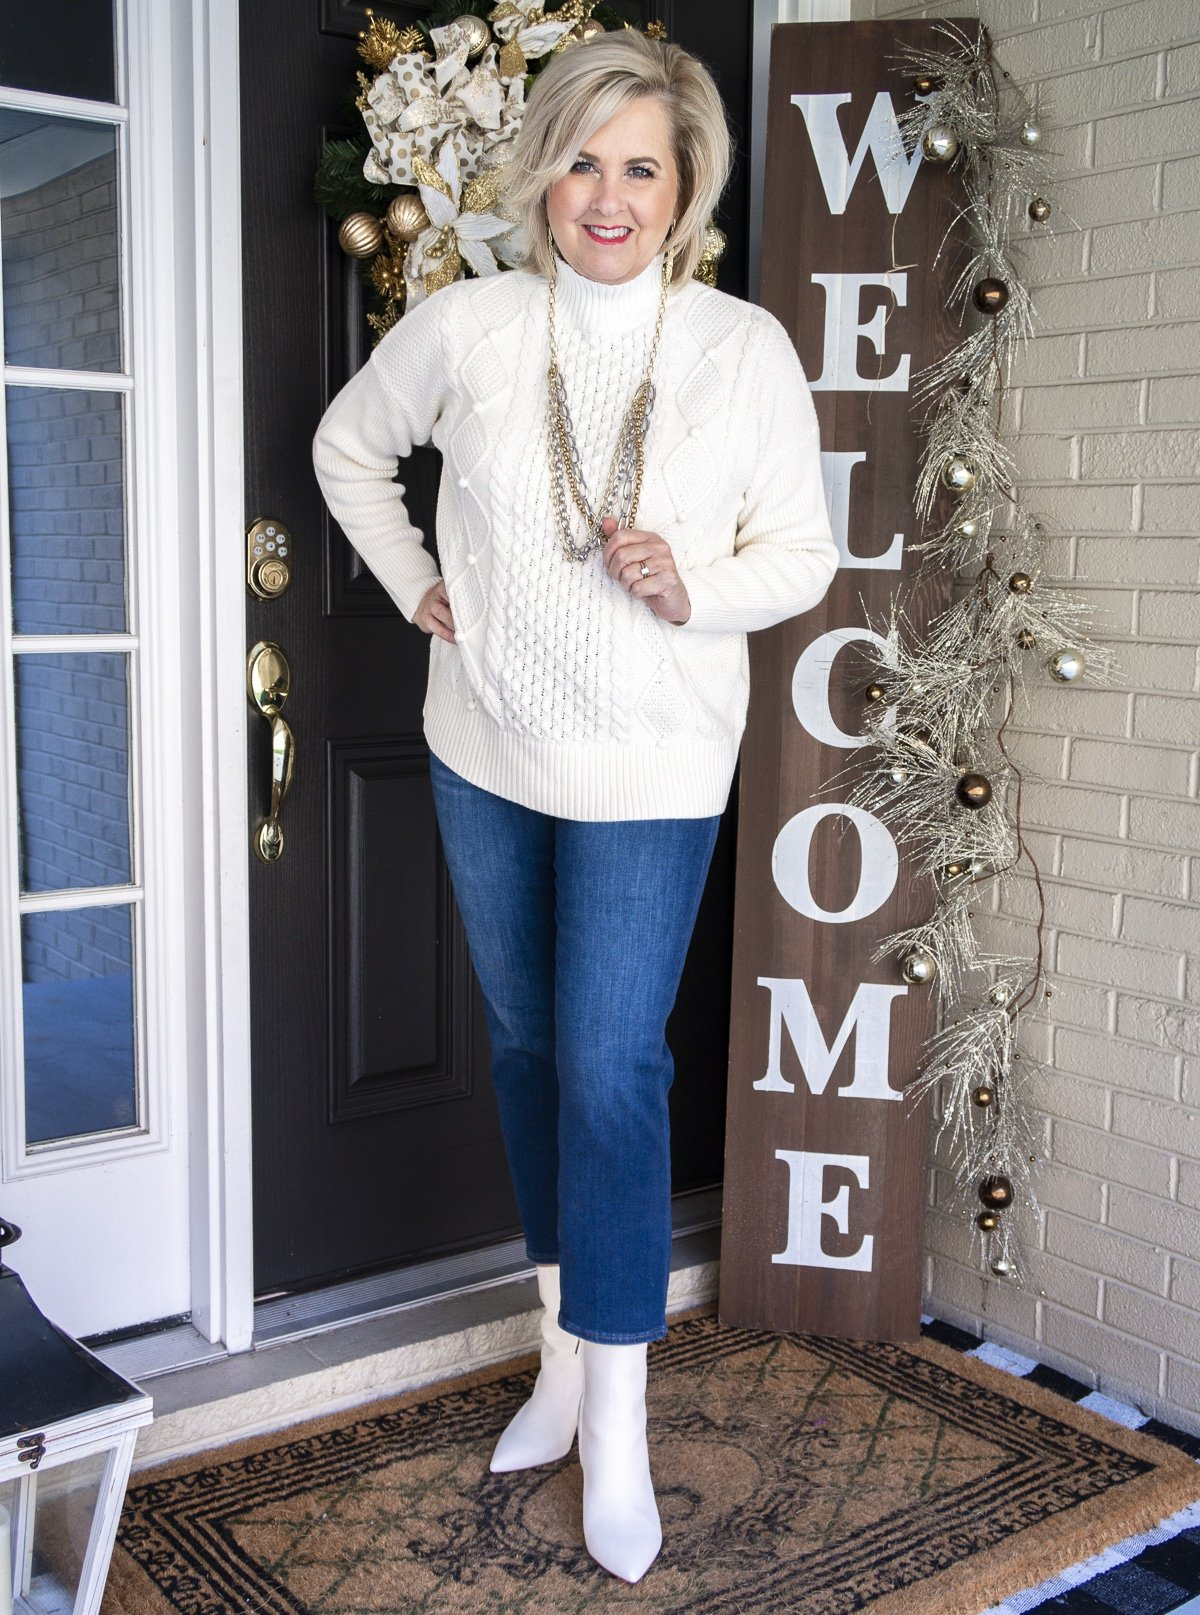 Fashion Blogger 50 Is Not Old is wearing a white cable-knit sweater, jewelry from Kendra Scott, crop jeans, and white pointy toe ankle boots